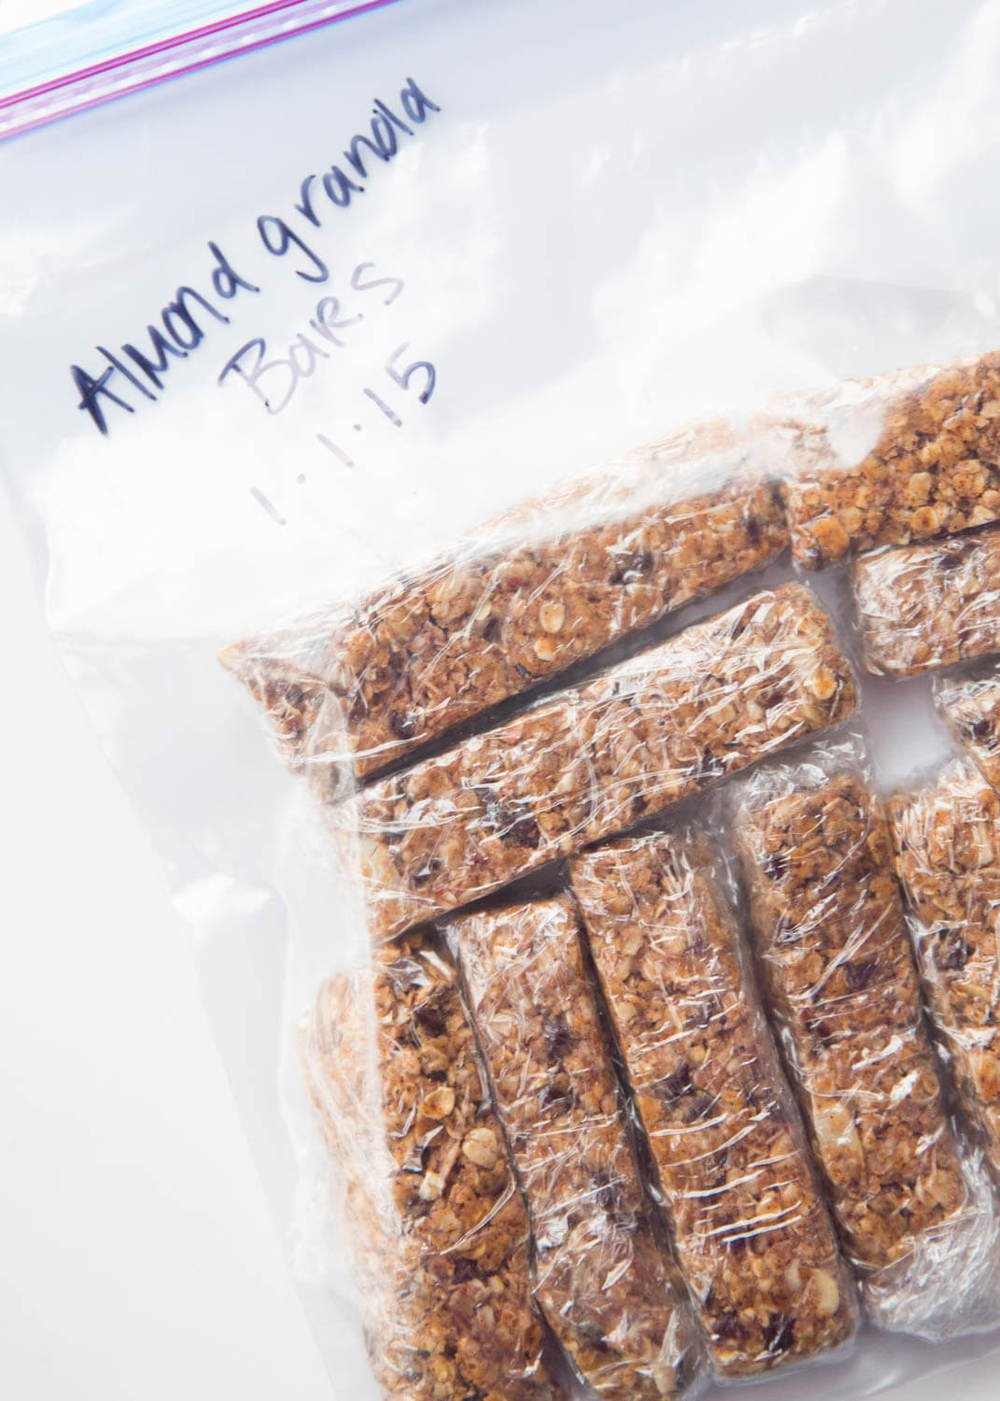 Best Homemade Granola Bar Recipe (No Bake) - I Heart Nap Time